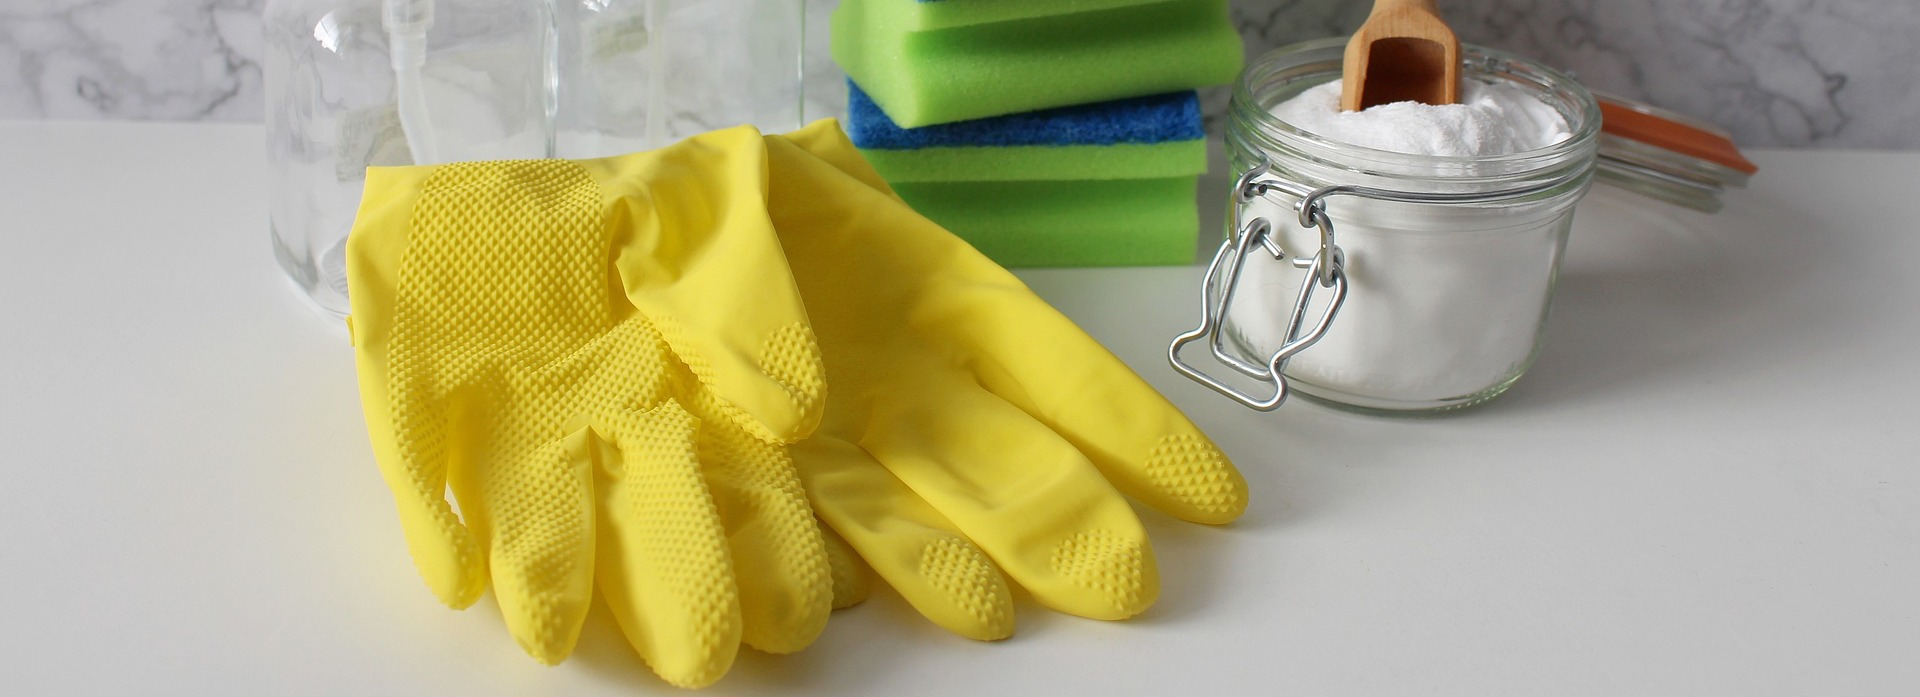 Cleaning hacks to shrink your work time